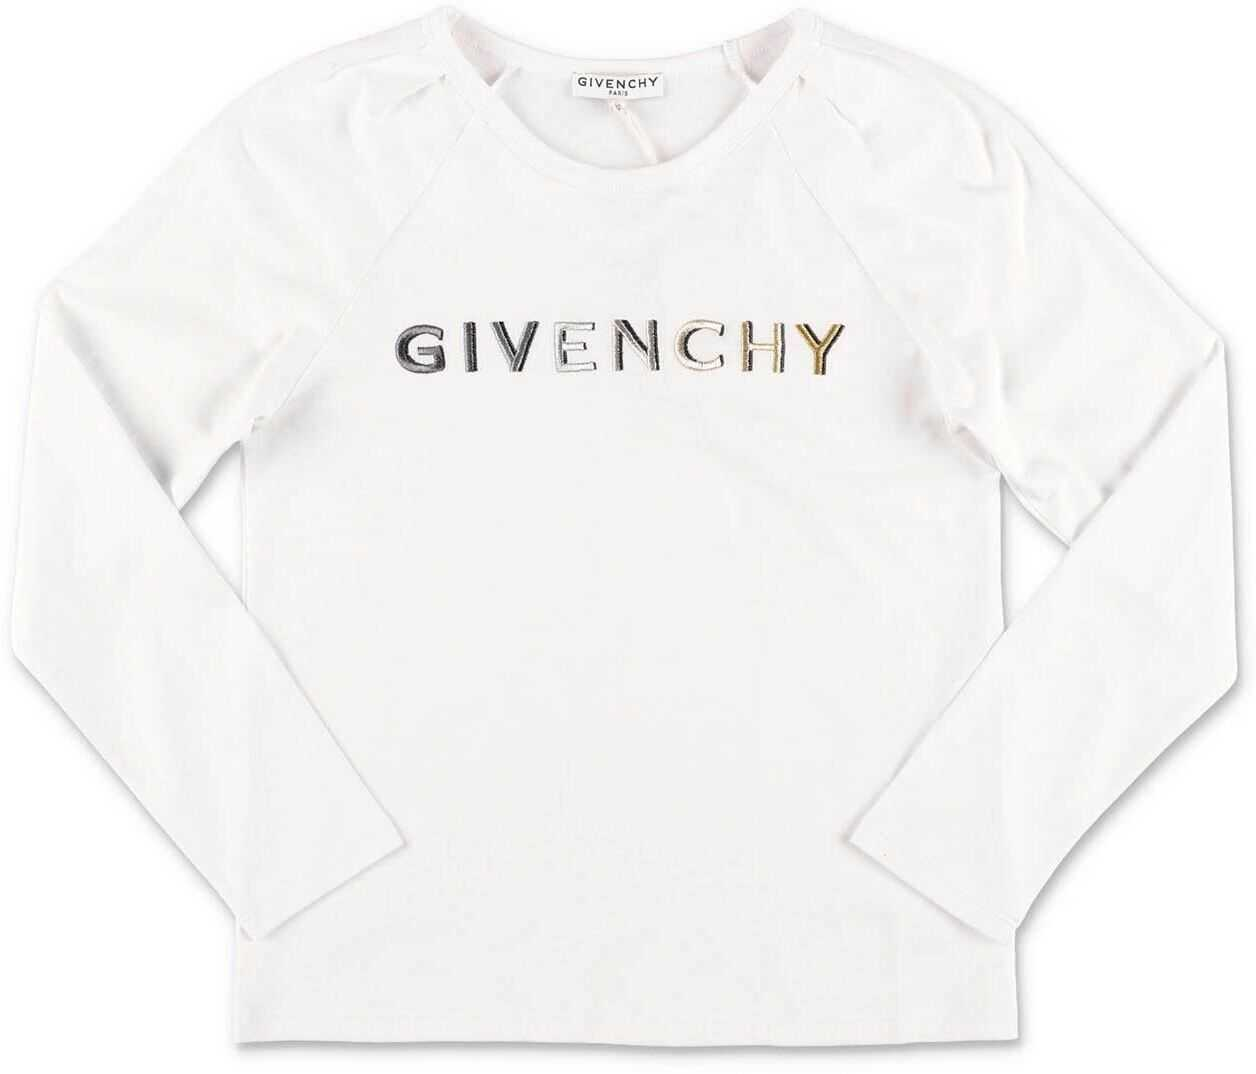 Givenchy Long Sleeve T-Shirt In White White